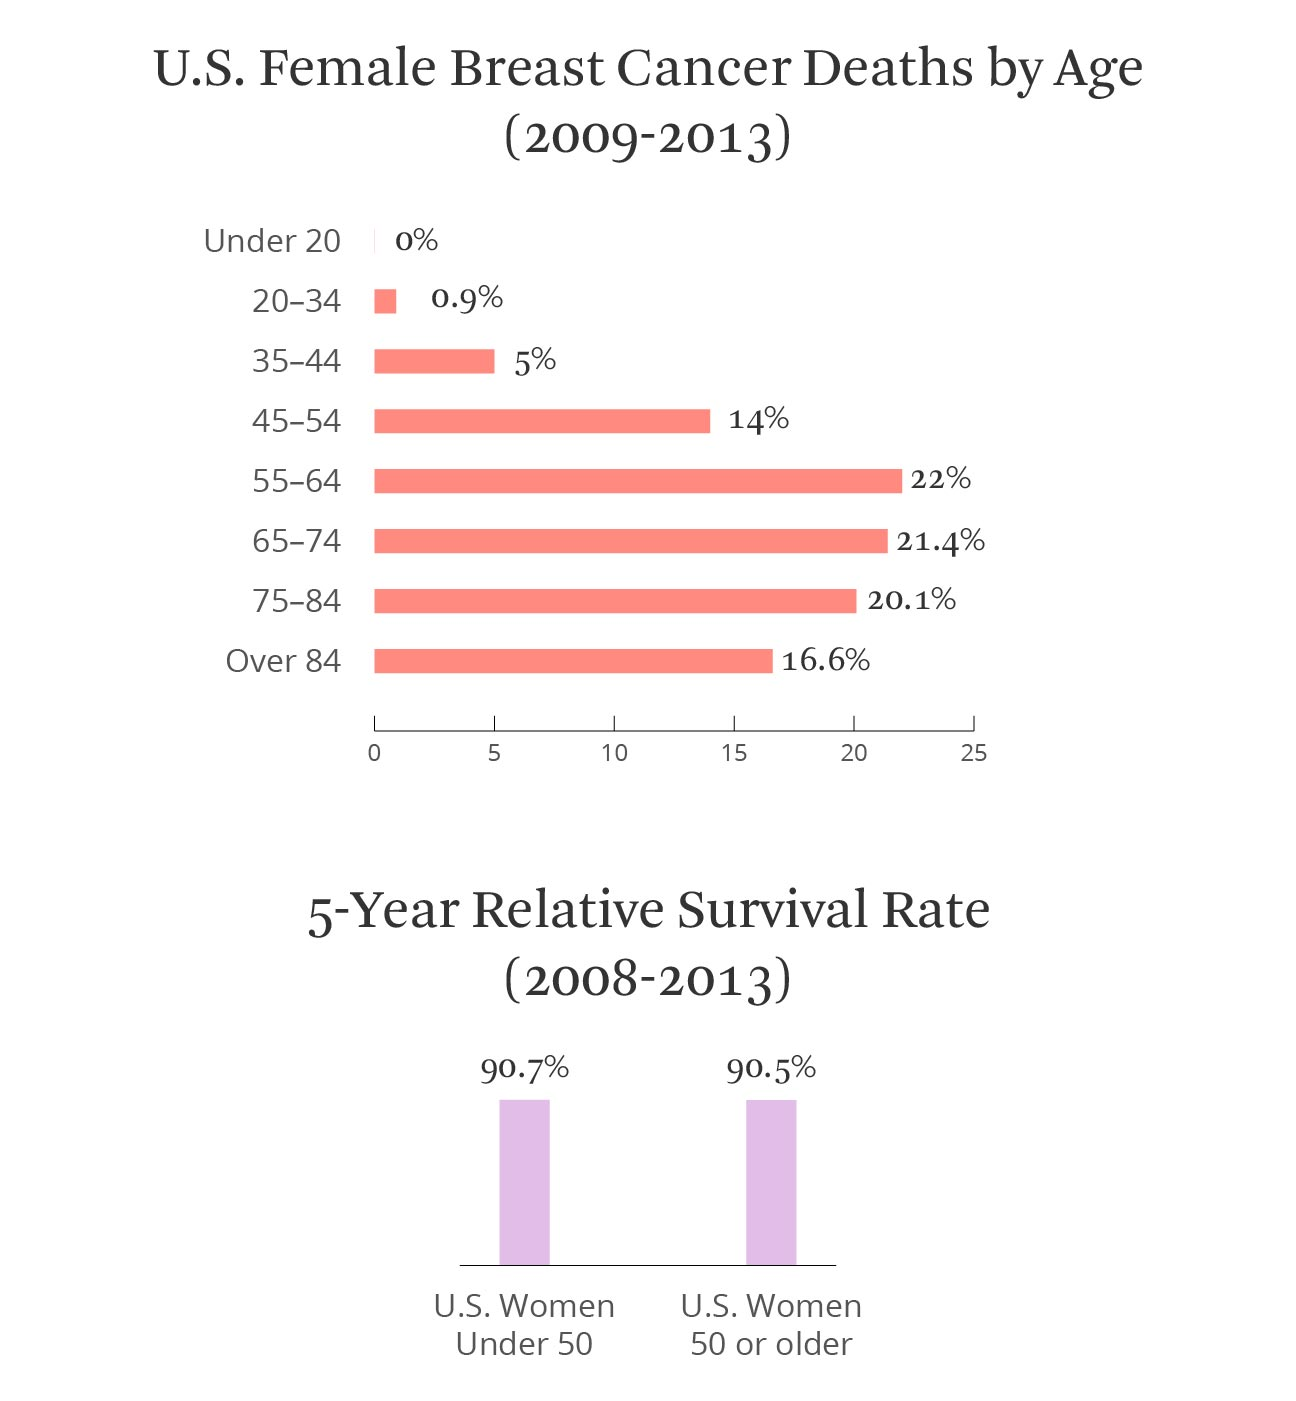 breast cancer deaths and relative survival rate